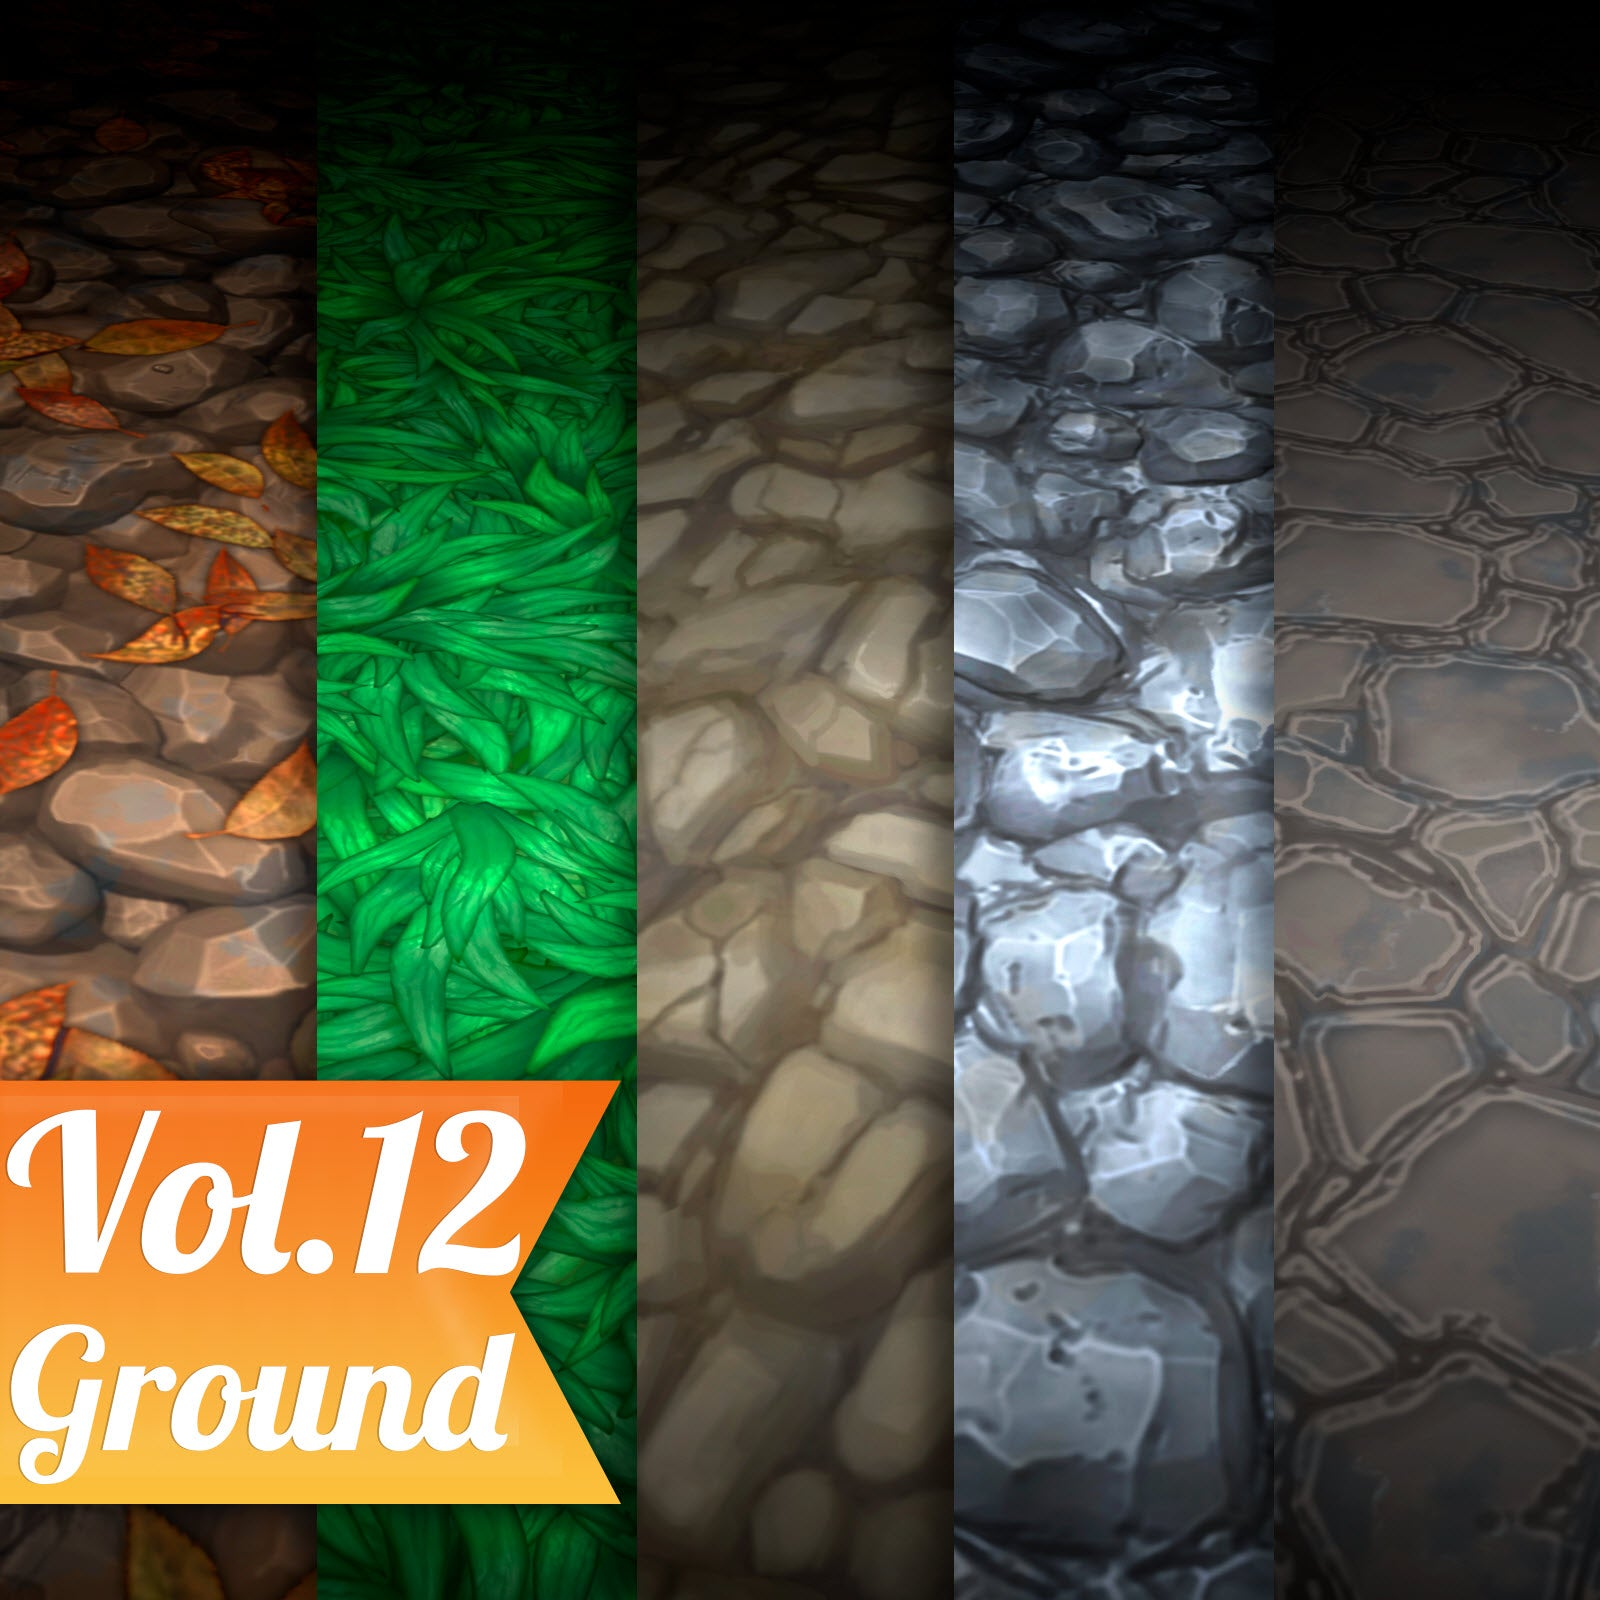 Ground Mix Vol.12 - Hand Painted Texture Pack - LowlyPoly